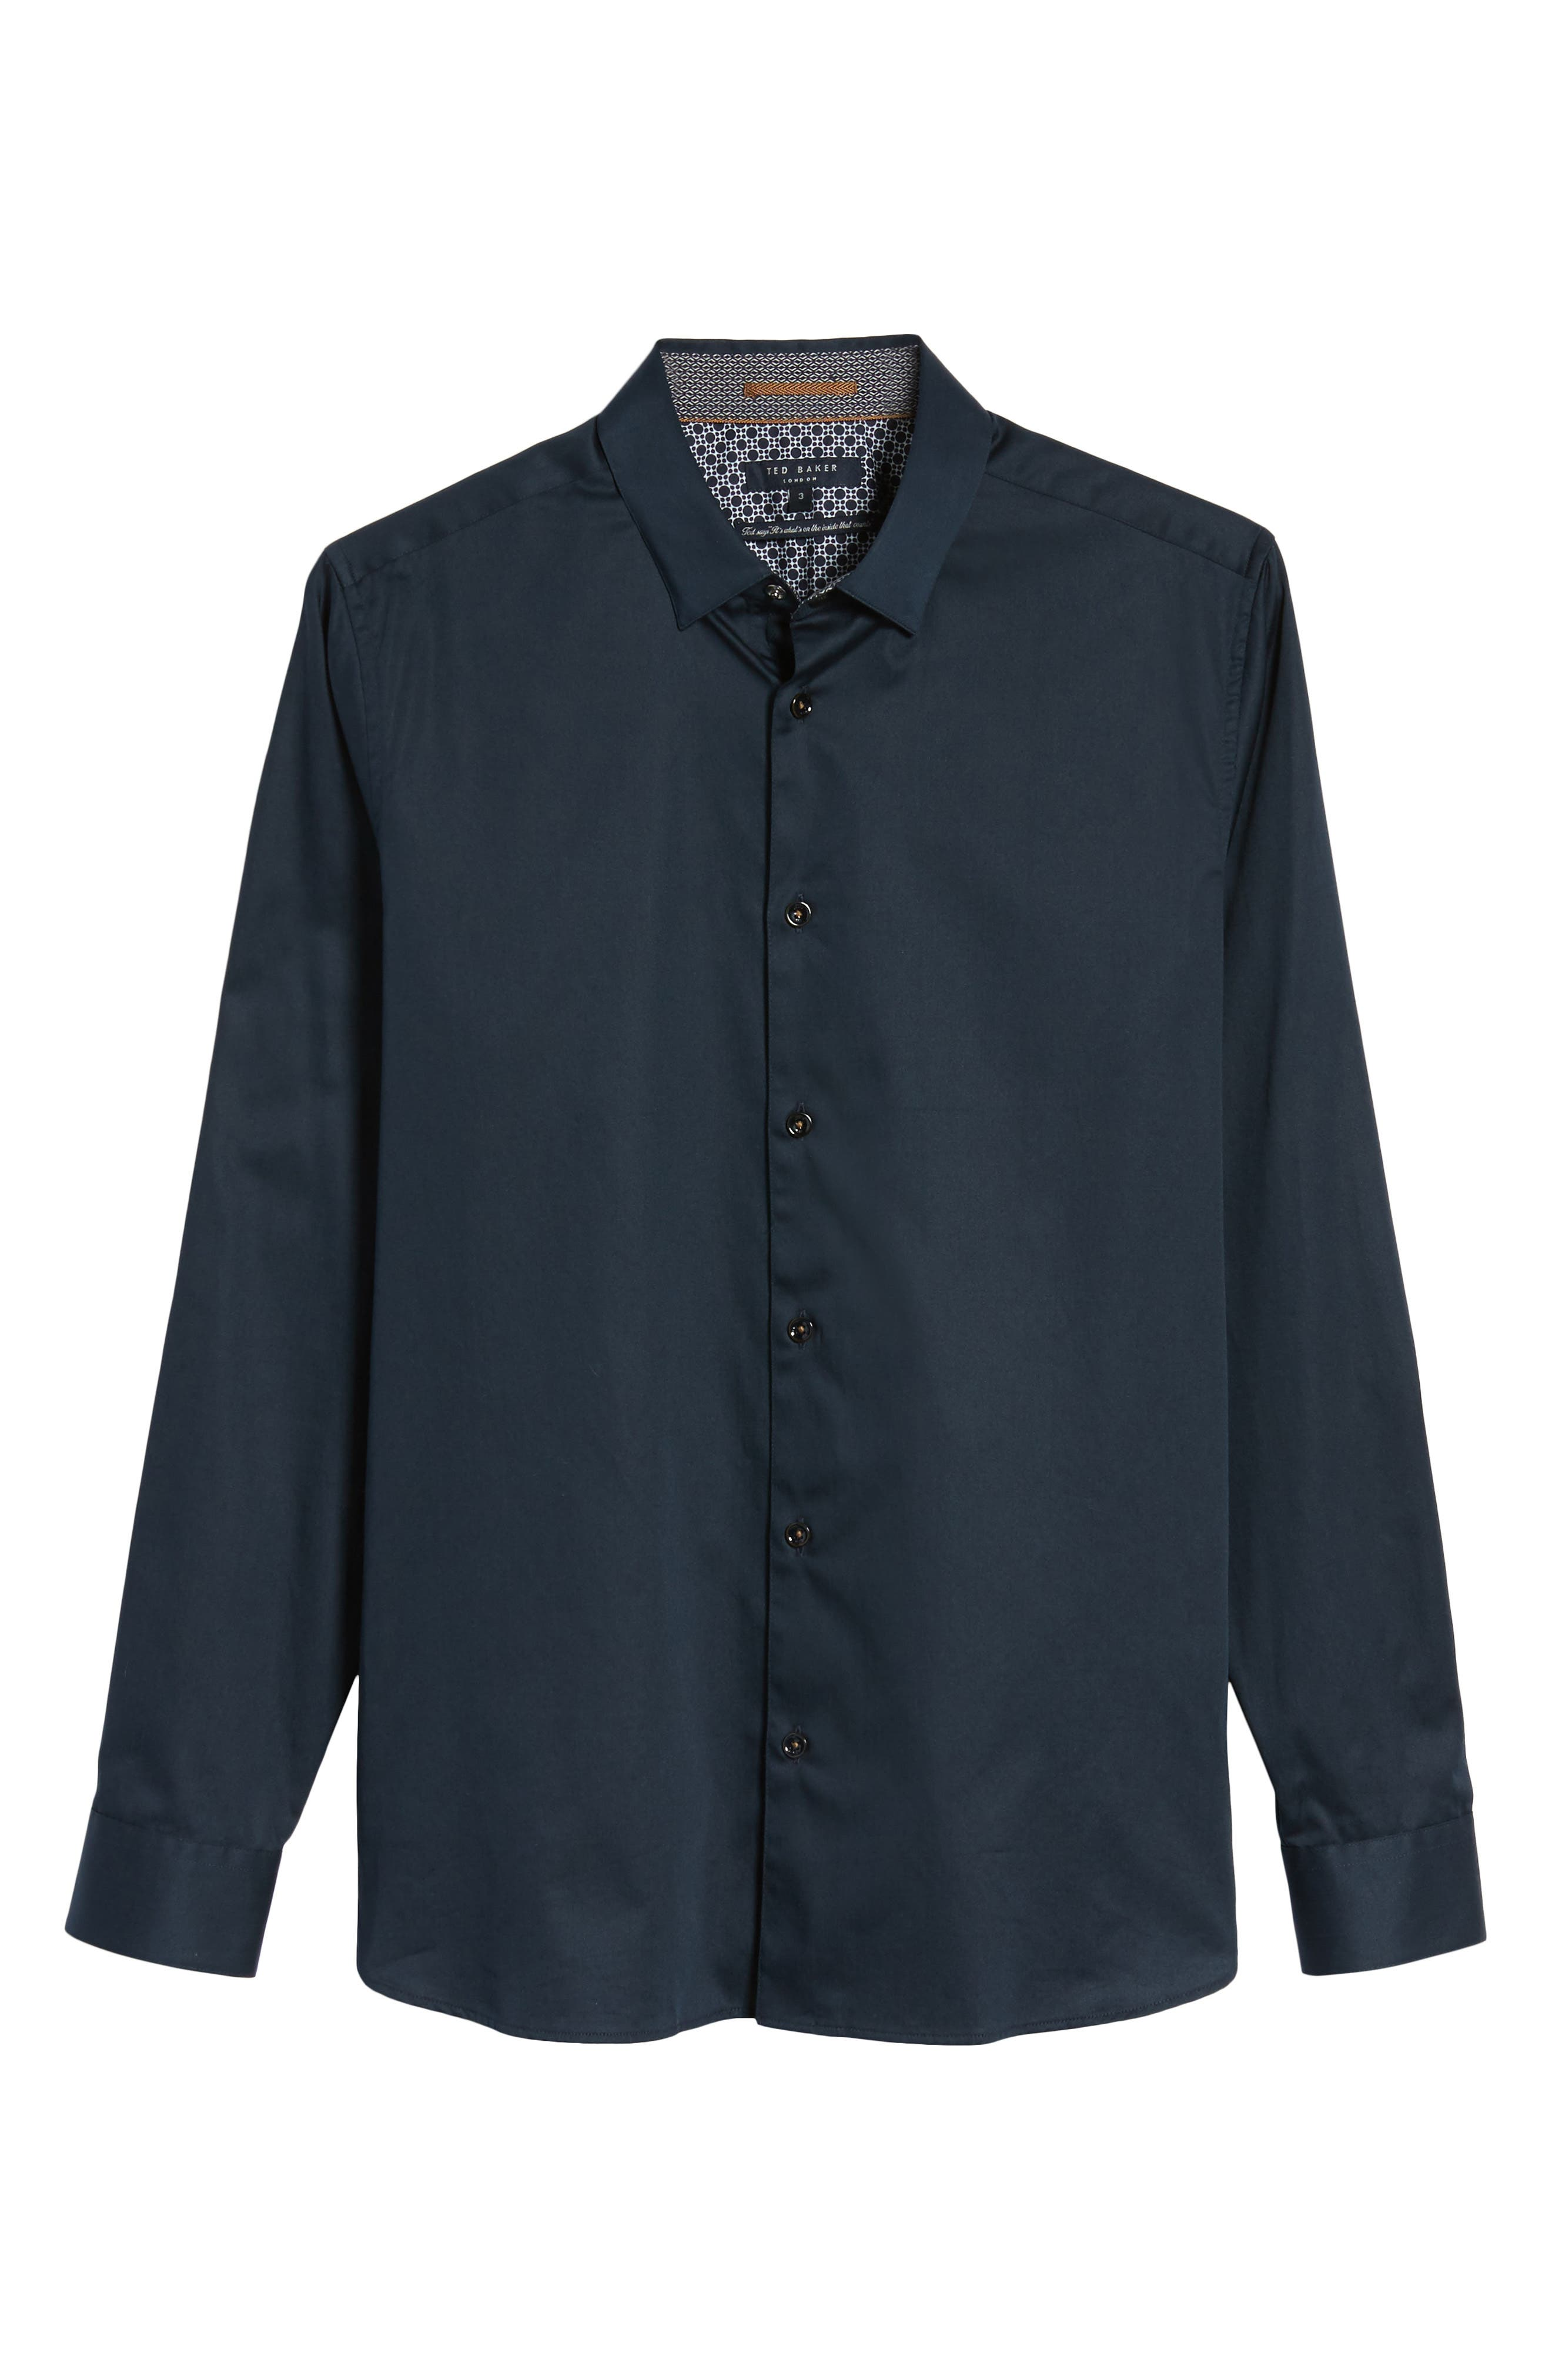 Marsay Modern Slim Fit Sport Shirt,                             Alternate thumbnail 6, color,                             Navy